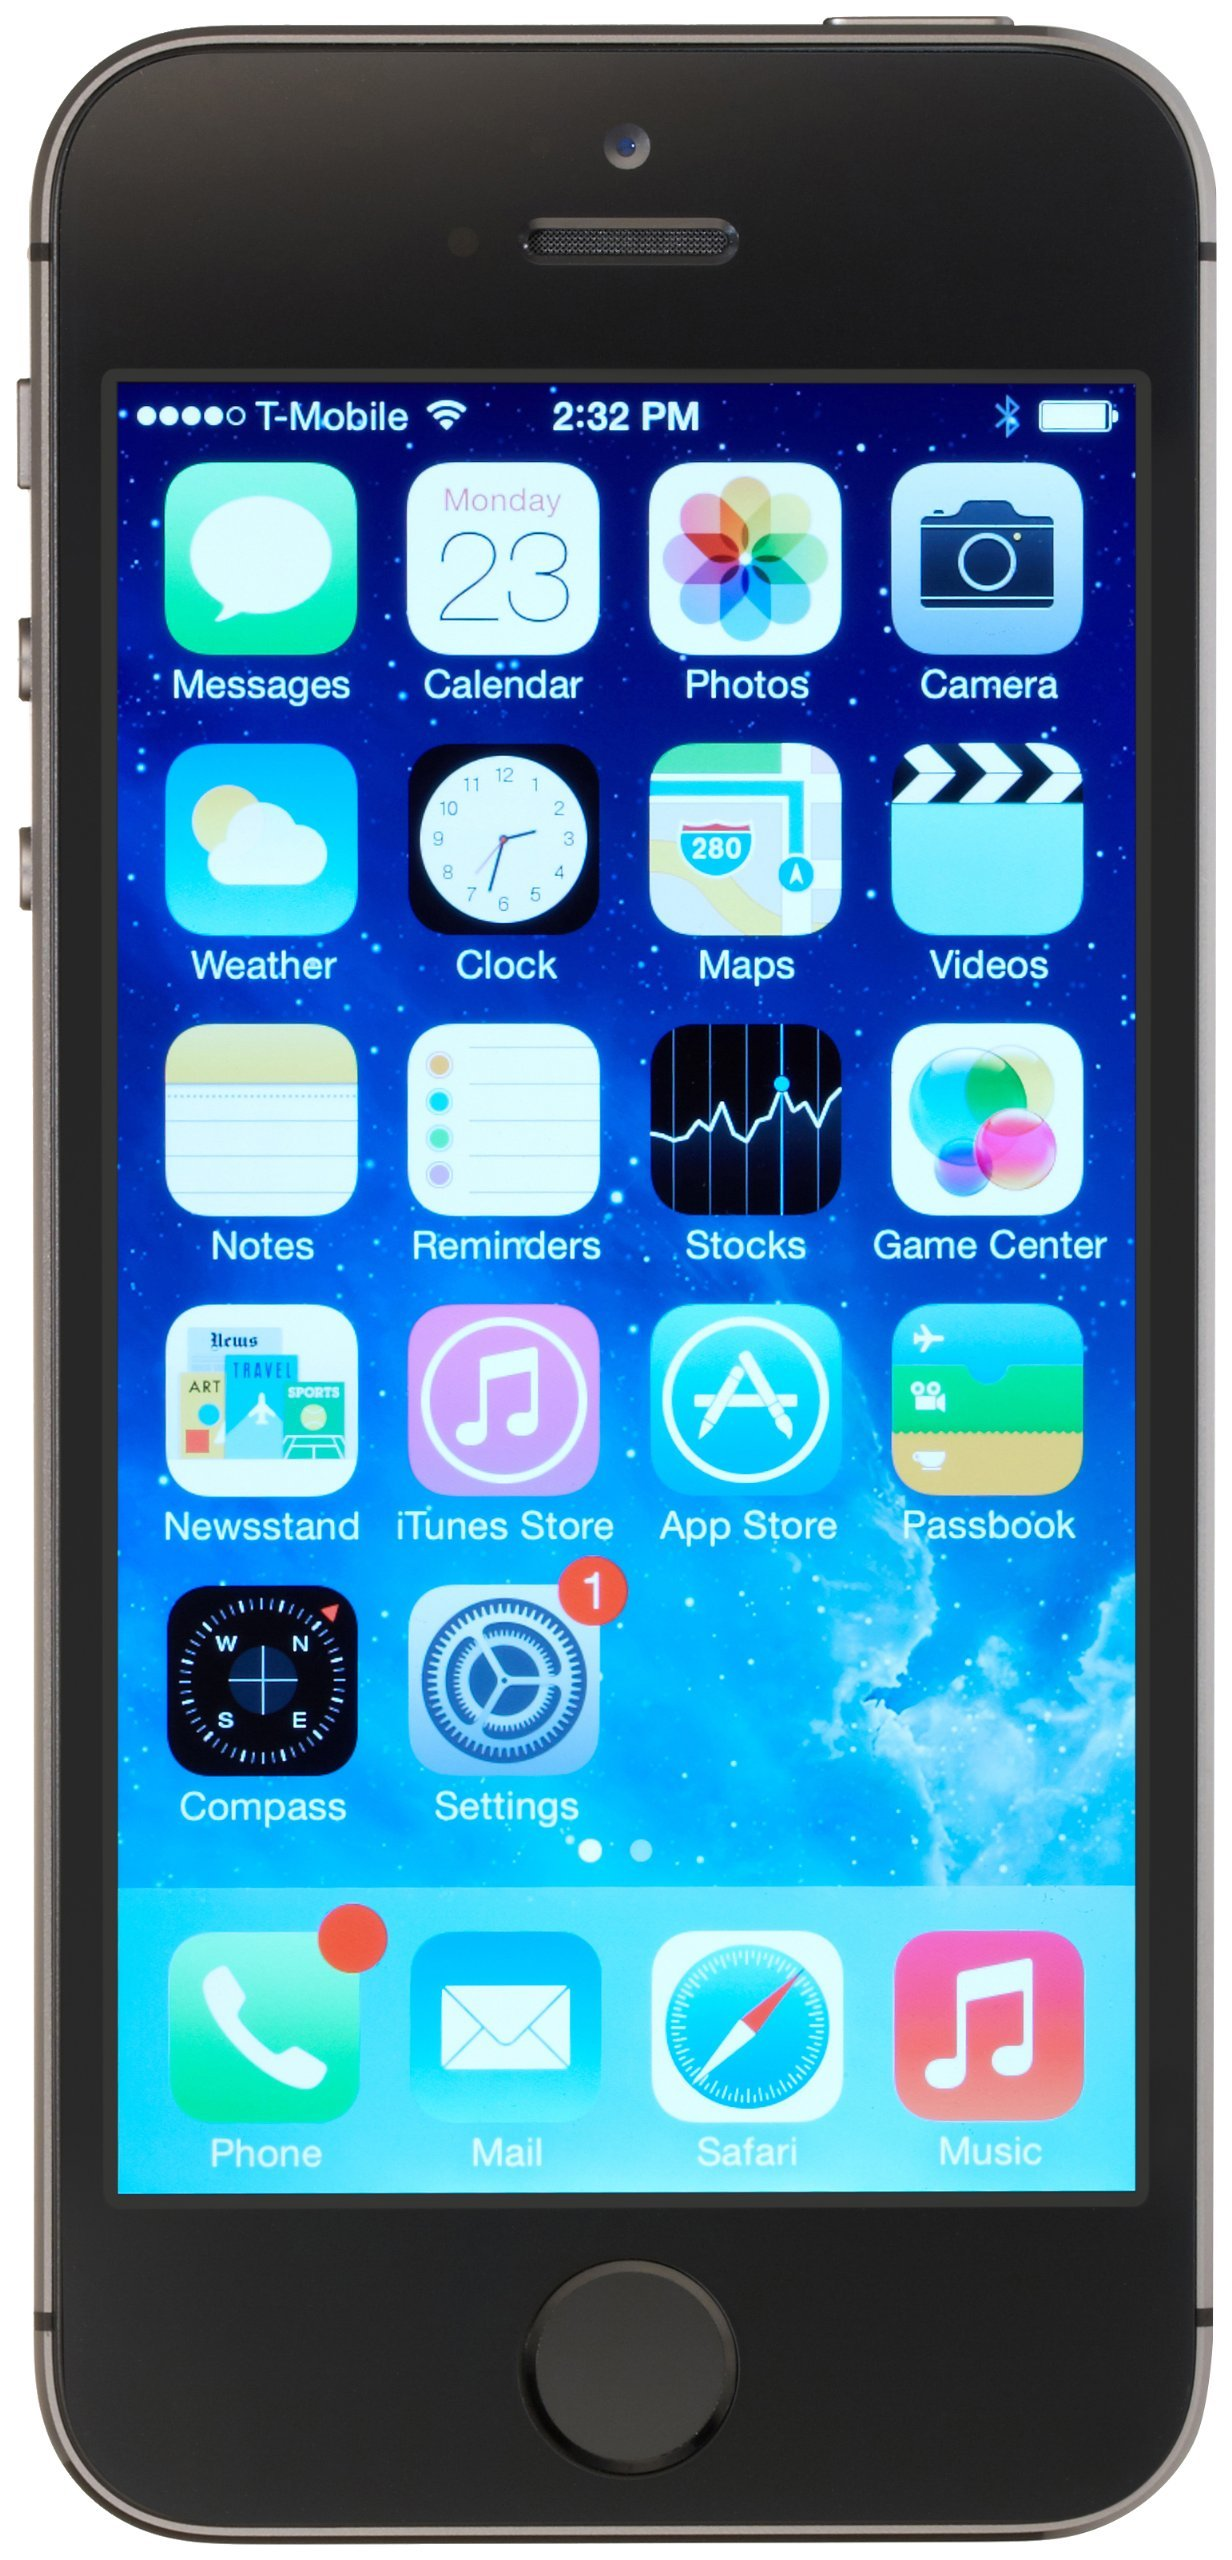 Apple Iphone 5s, 16GB - Unlocked (Space Gray) by Apple (Image #1)